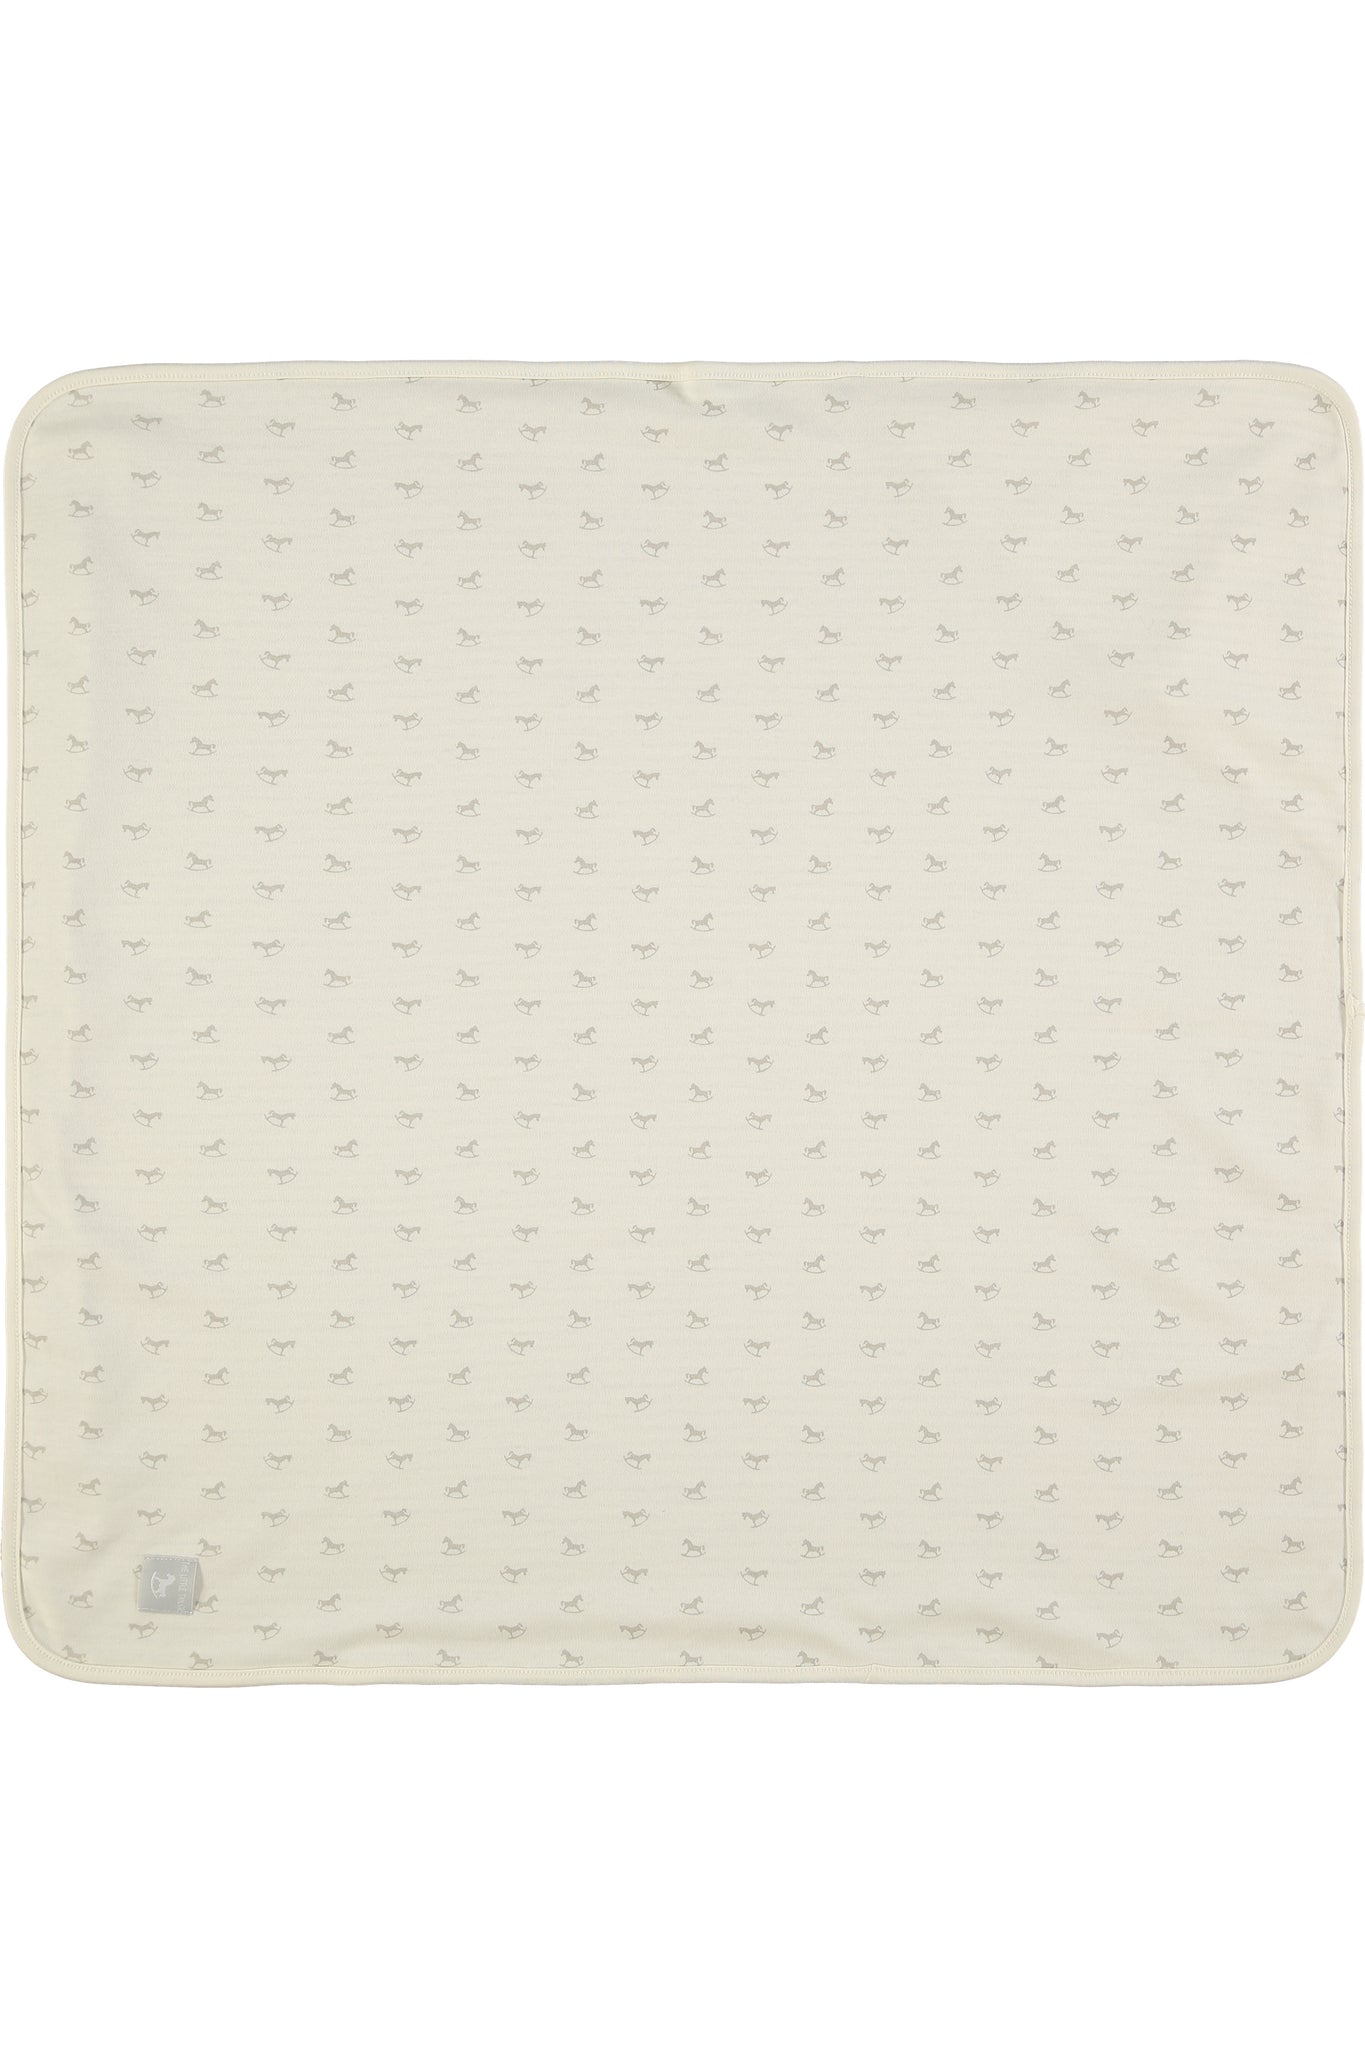 Reversible Soft Jersey Blanket - cream